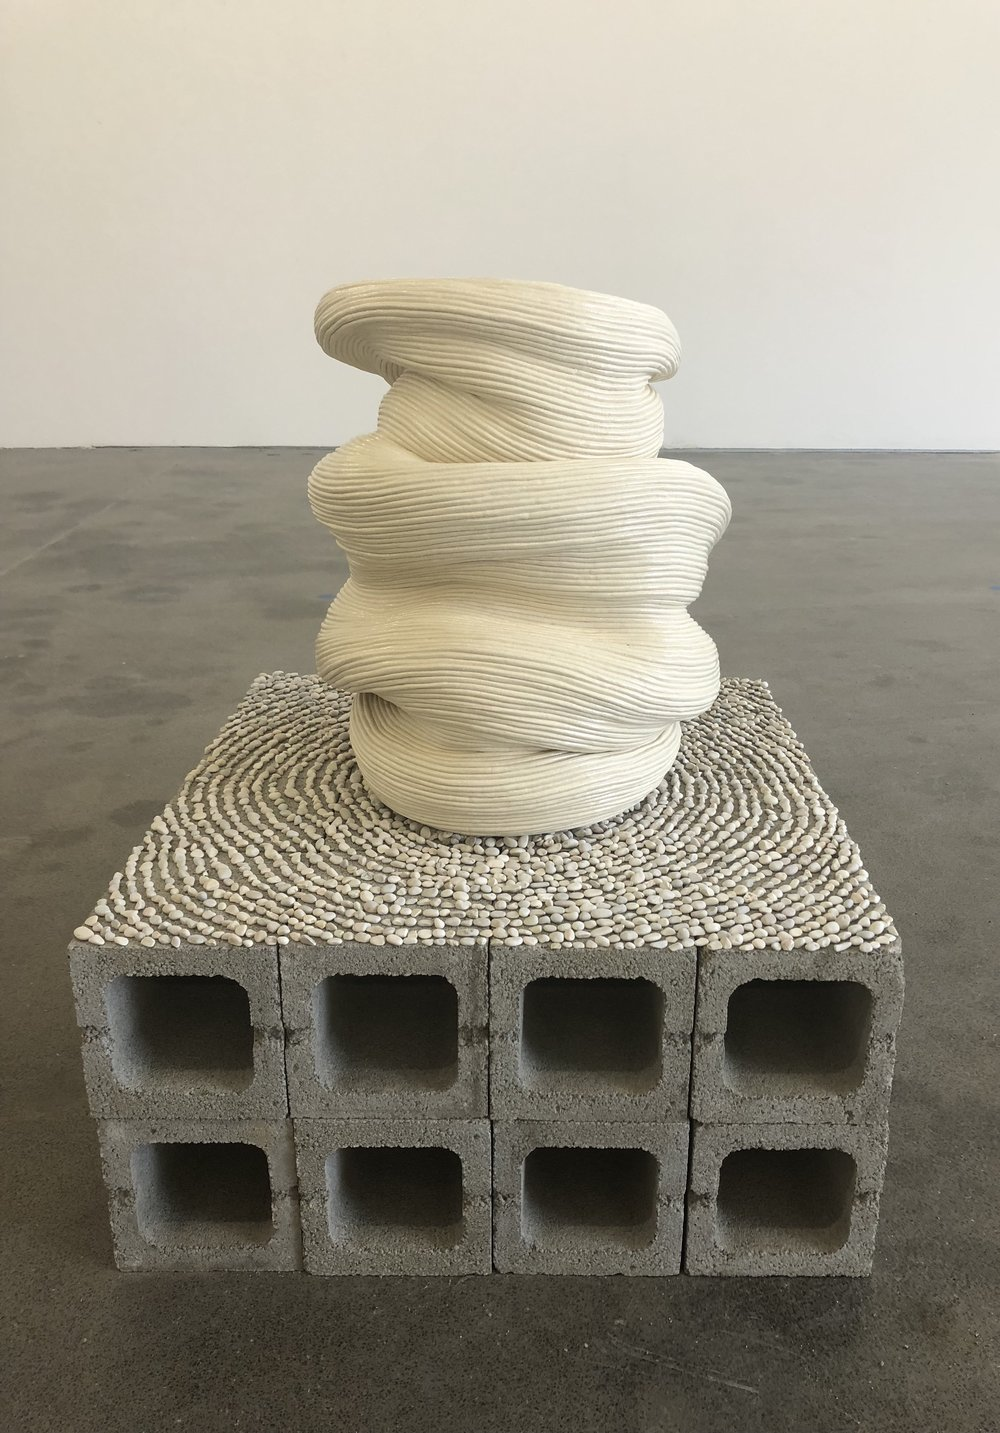 Zhu Ohmu, As Within, So WIthout Glazed Ceramics, 52 x 62 cm This work has been collected by the Australian Goverment via Artbank